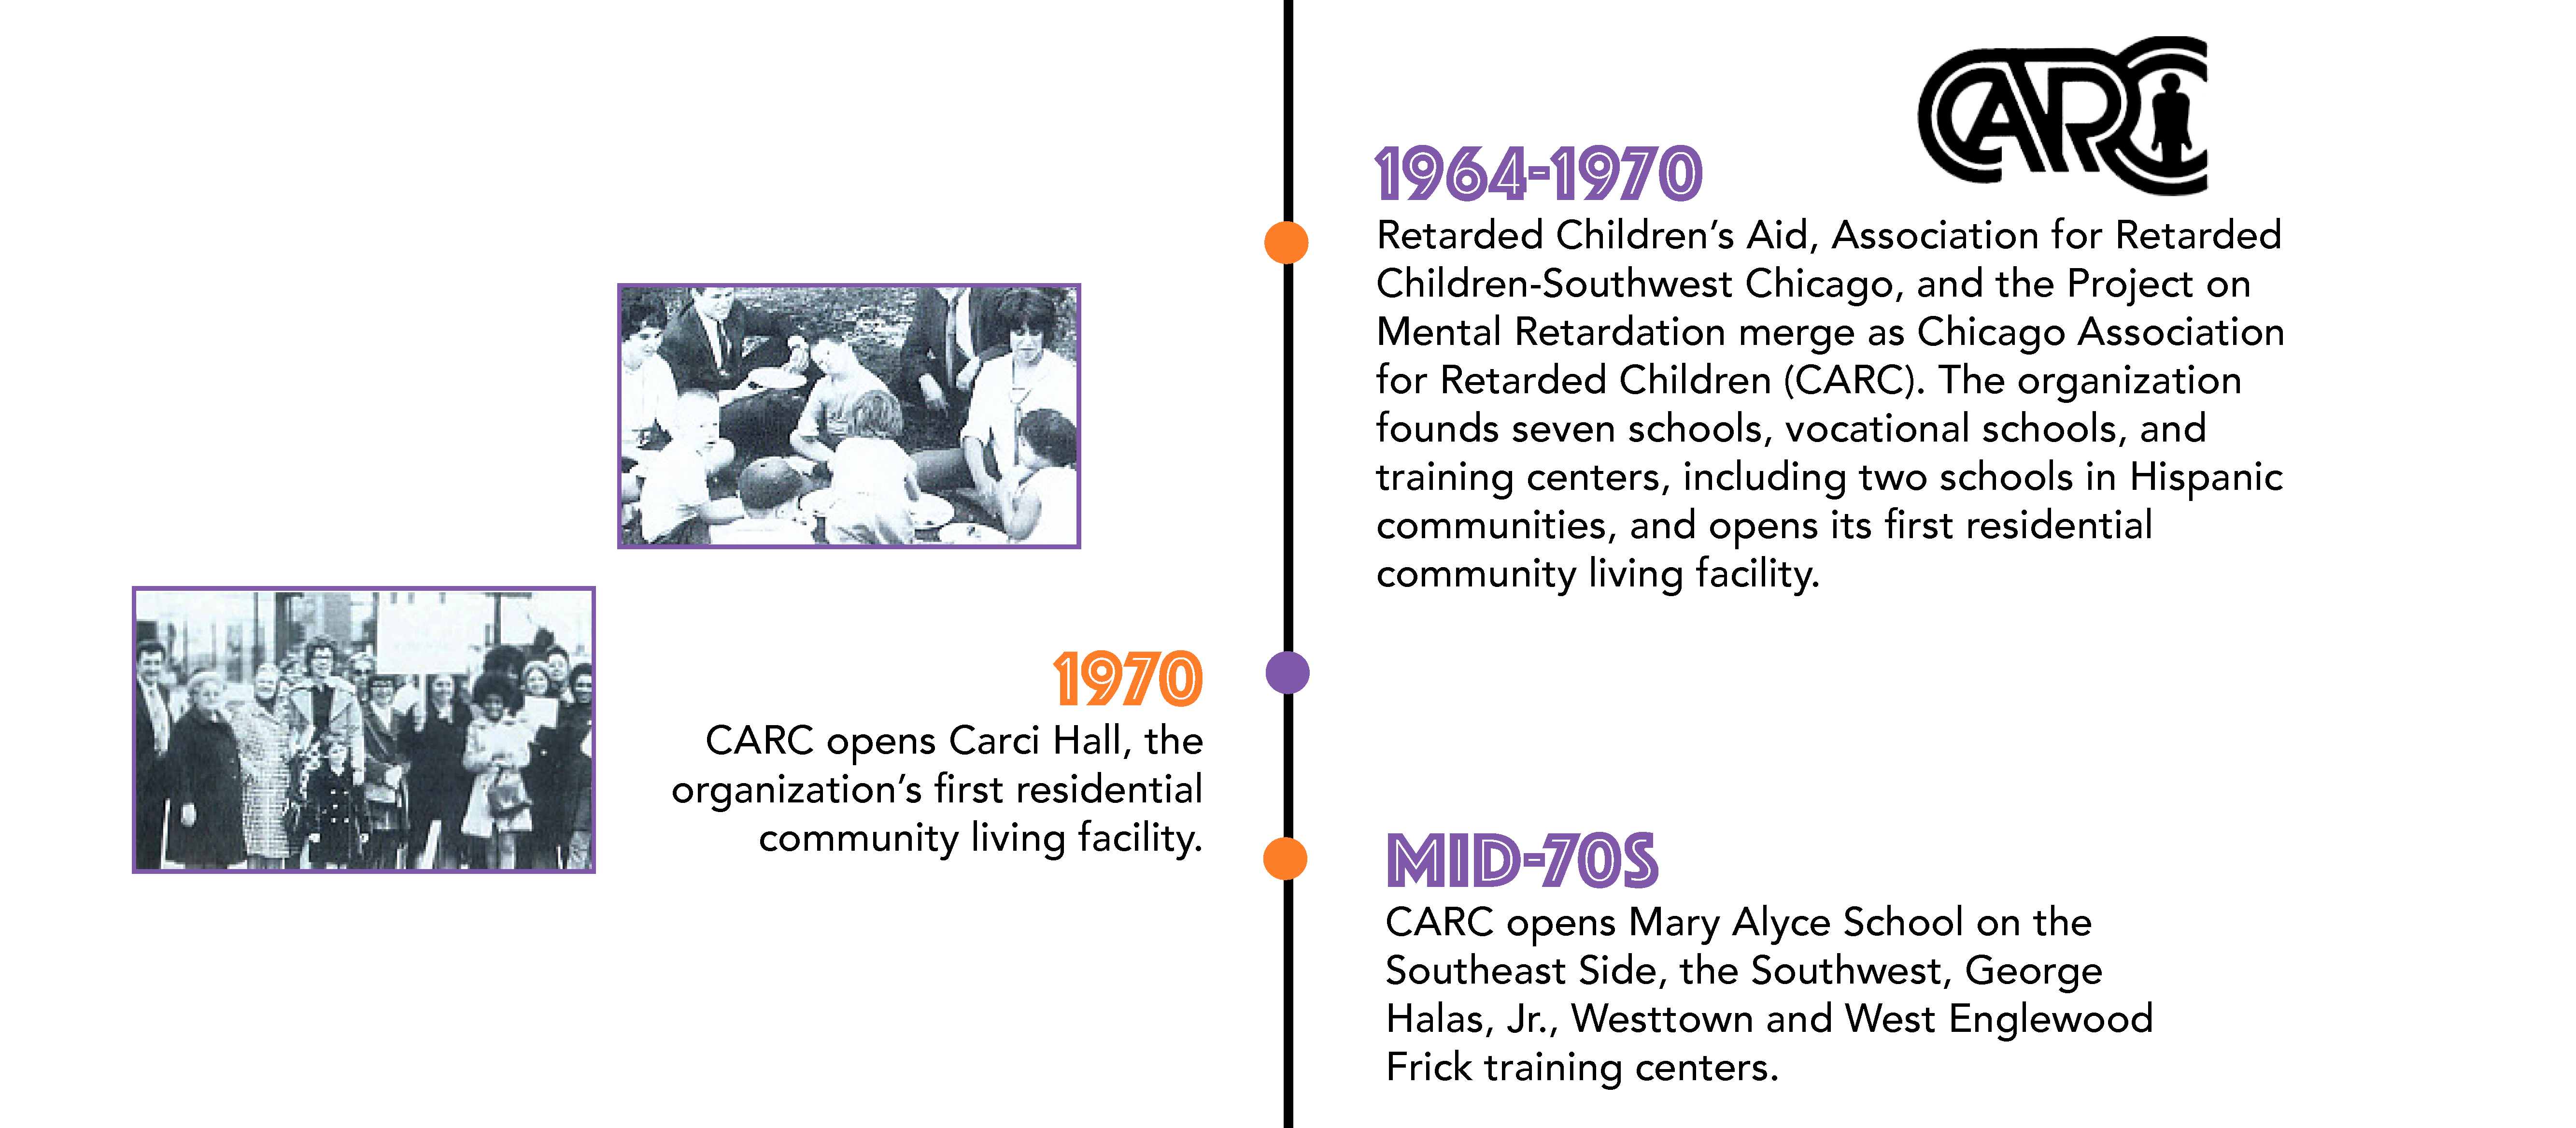 Between 1964-and the mid 70s, RCA, the Association for Retarded Children-Southwest Chicago, and the Project on Mental Retardation merge as Chicago Association for Retarded Children (CARC). The organization founds seven schools, vocational schools, and training centers, including two schools in Hispanic communities, and opens Carci Hall, its first residential community living facility.